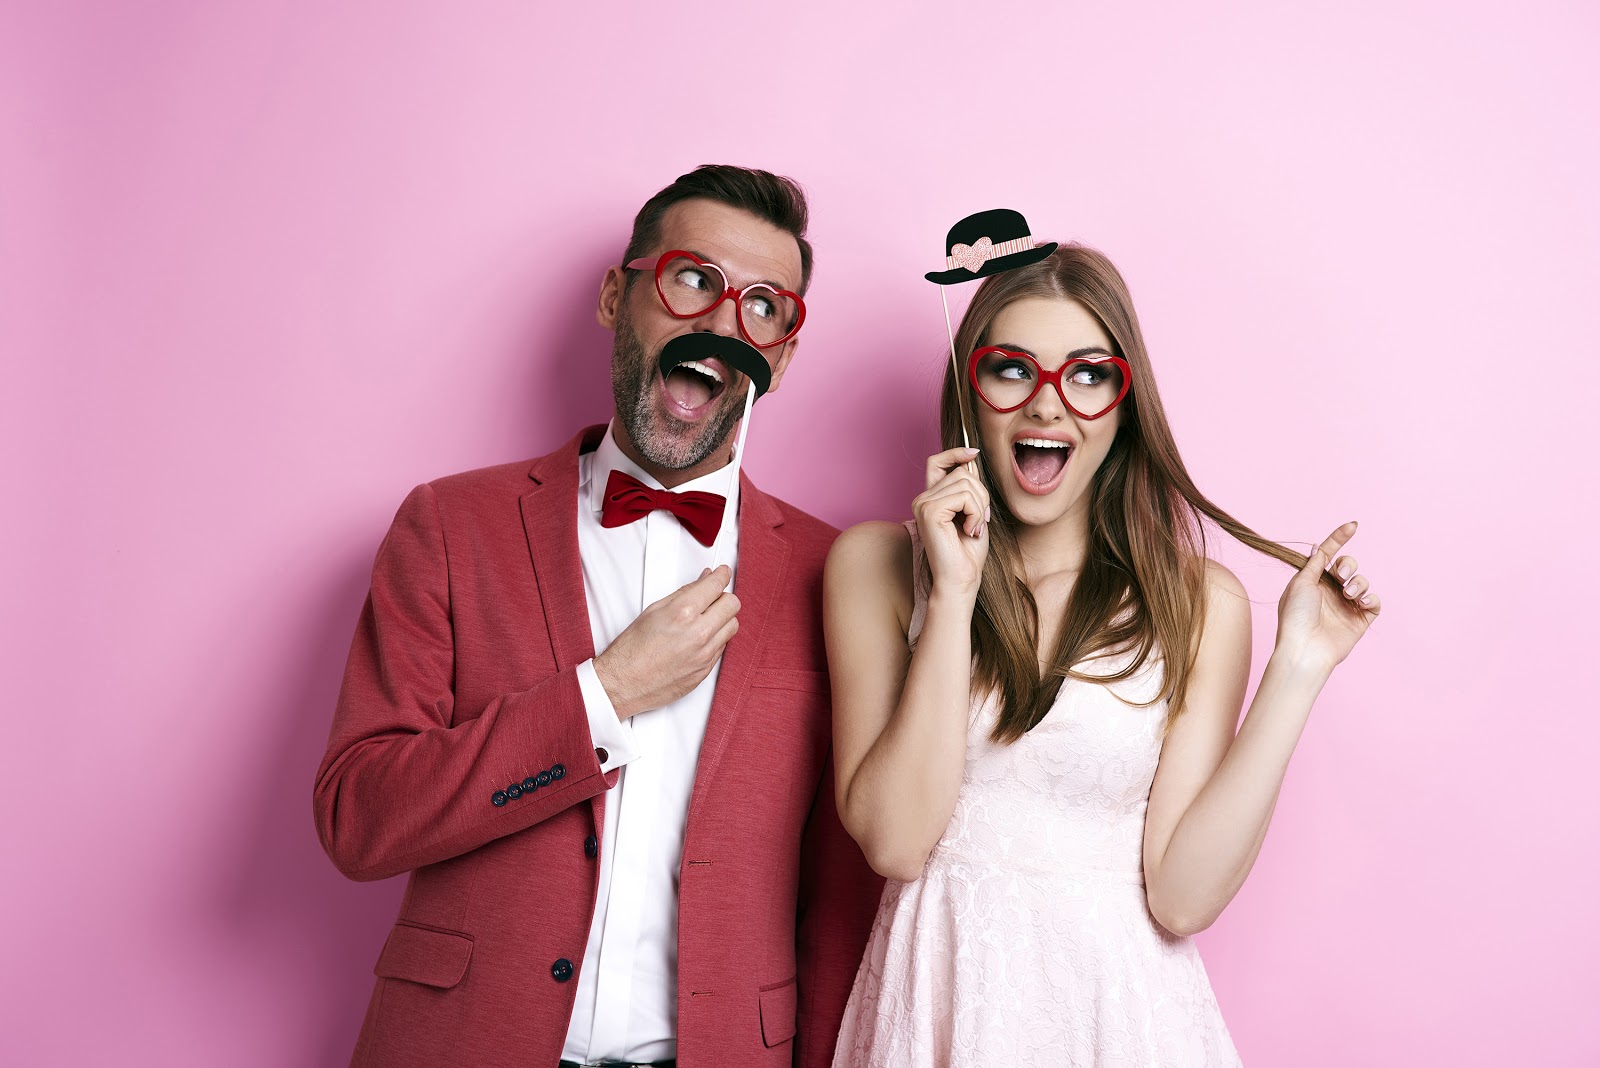 Engagement Party Games: Couple with a wacky smile